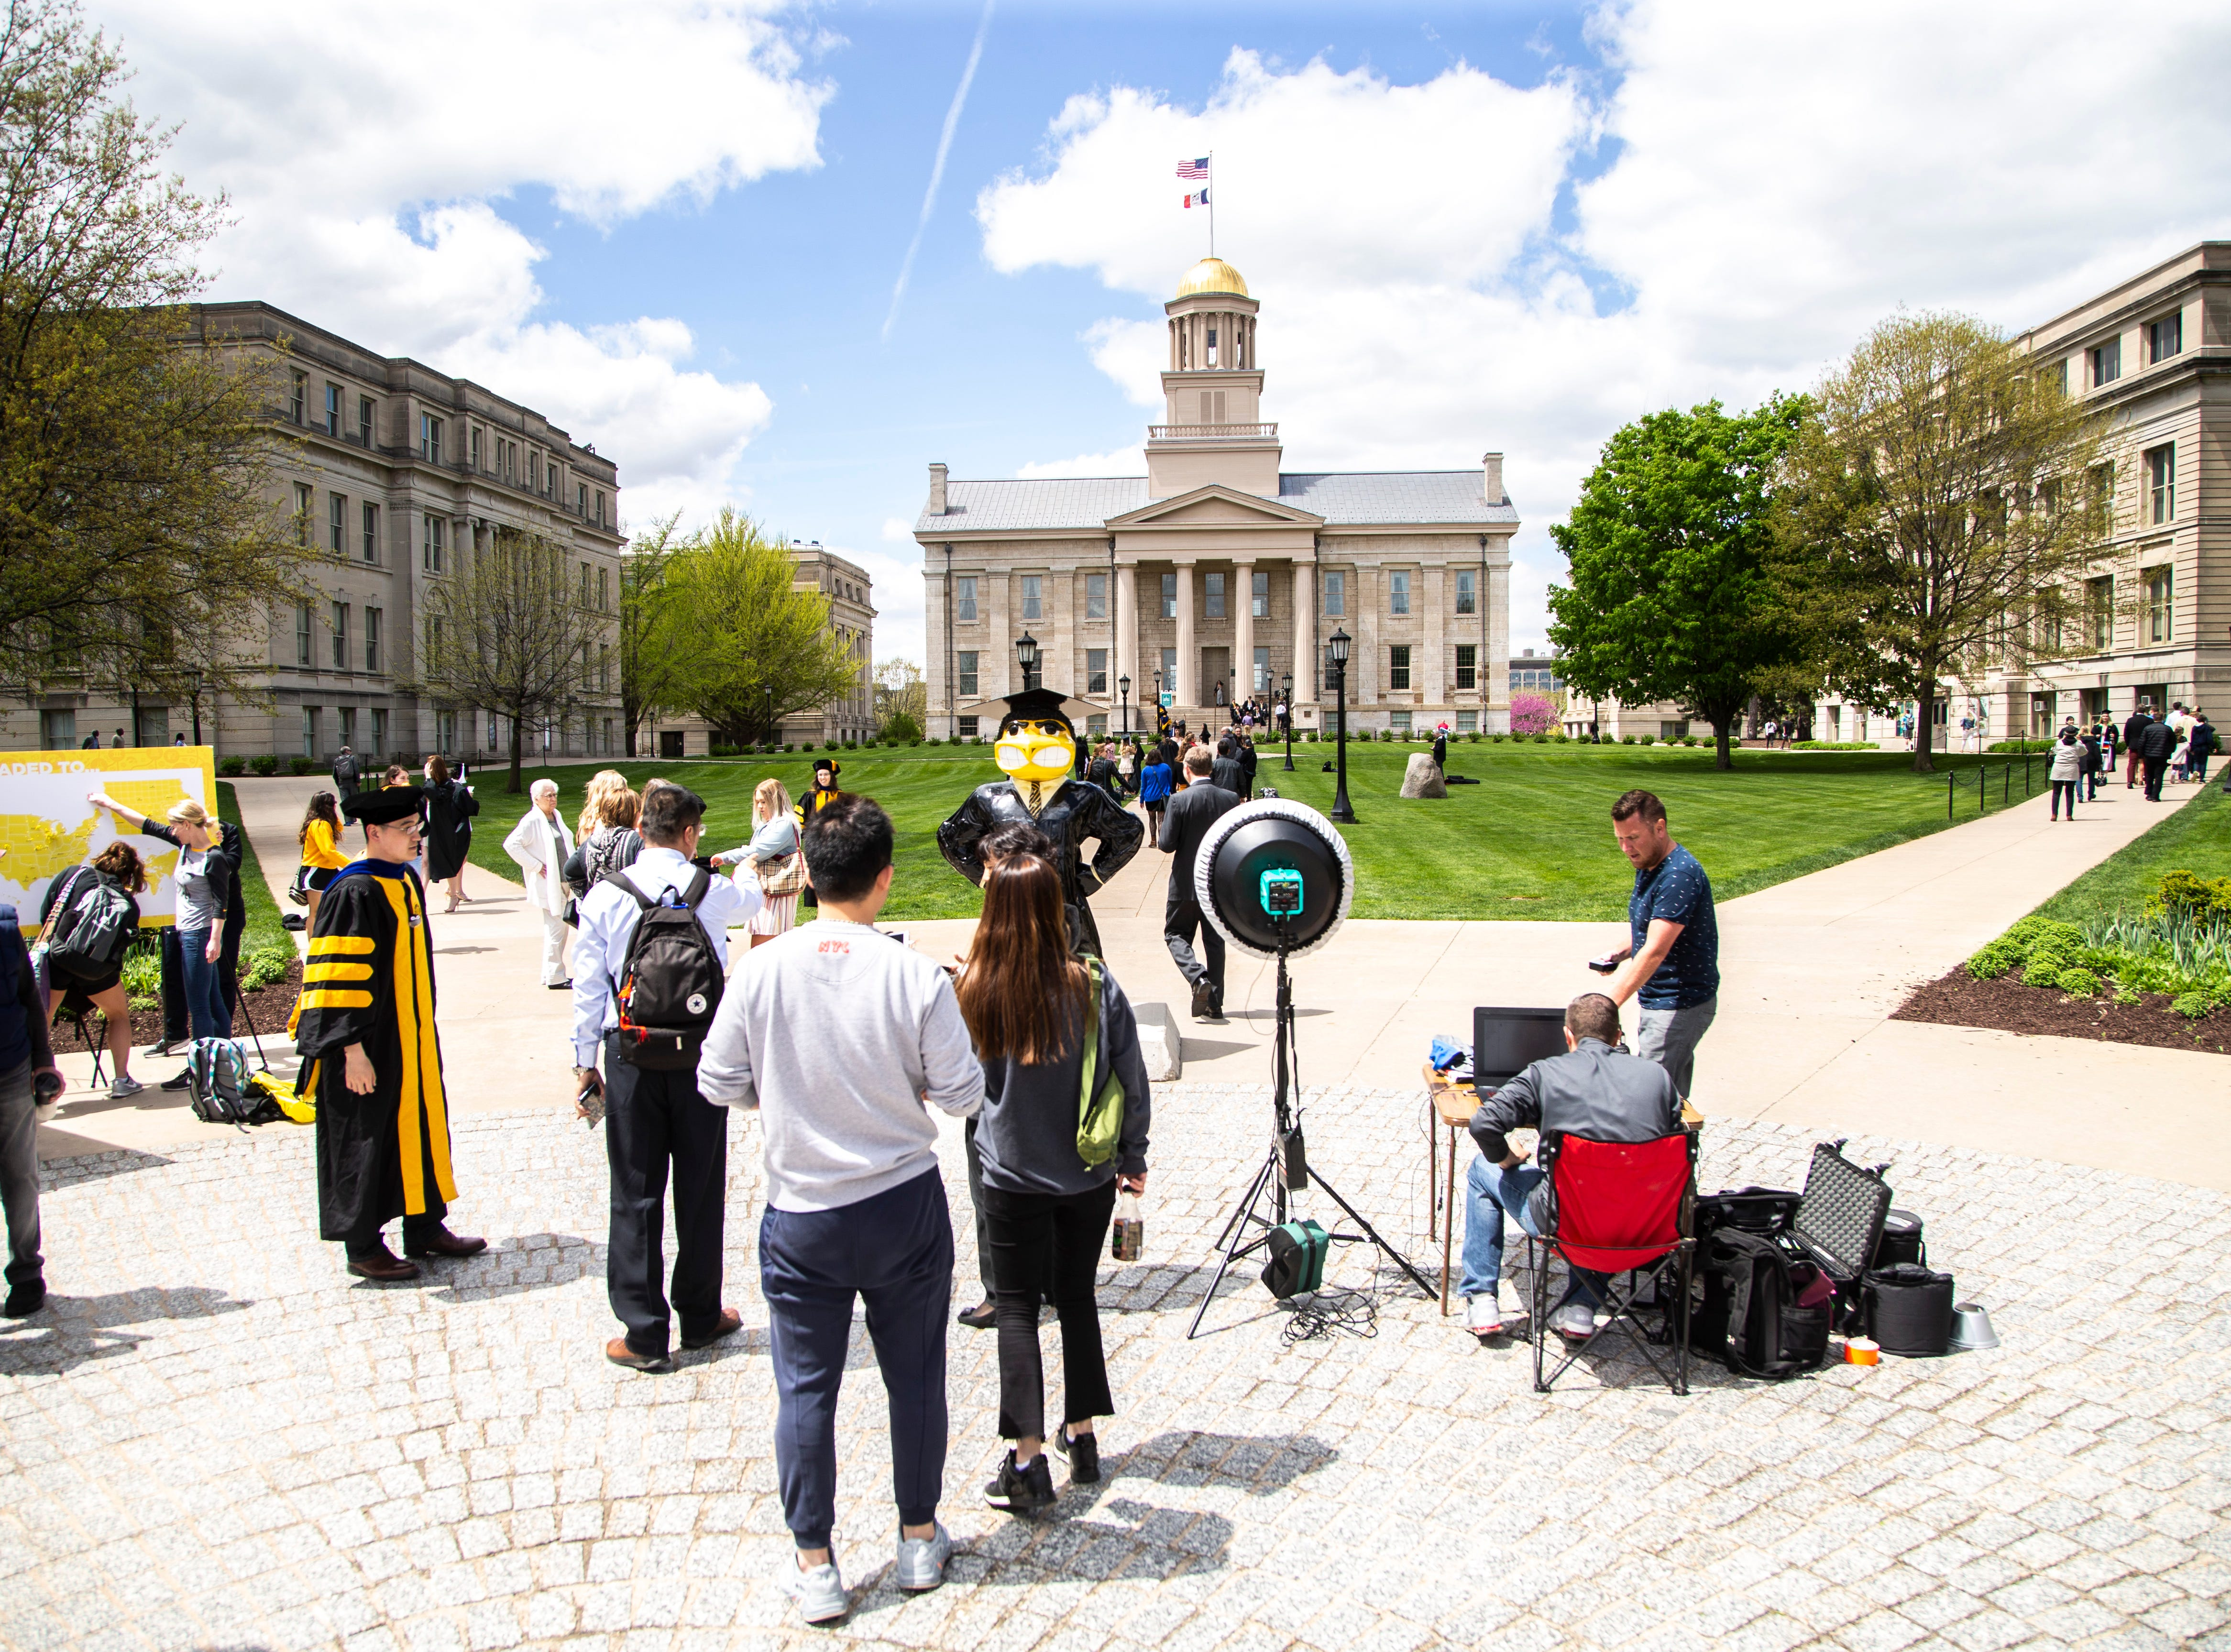 """Graduates-to-be take photos with """"Graduation Herky"""" during the last day of finals week, Friday, May 10, 2019, on the University of Iowa campus in Iowa City, Iowa."""